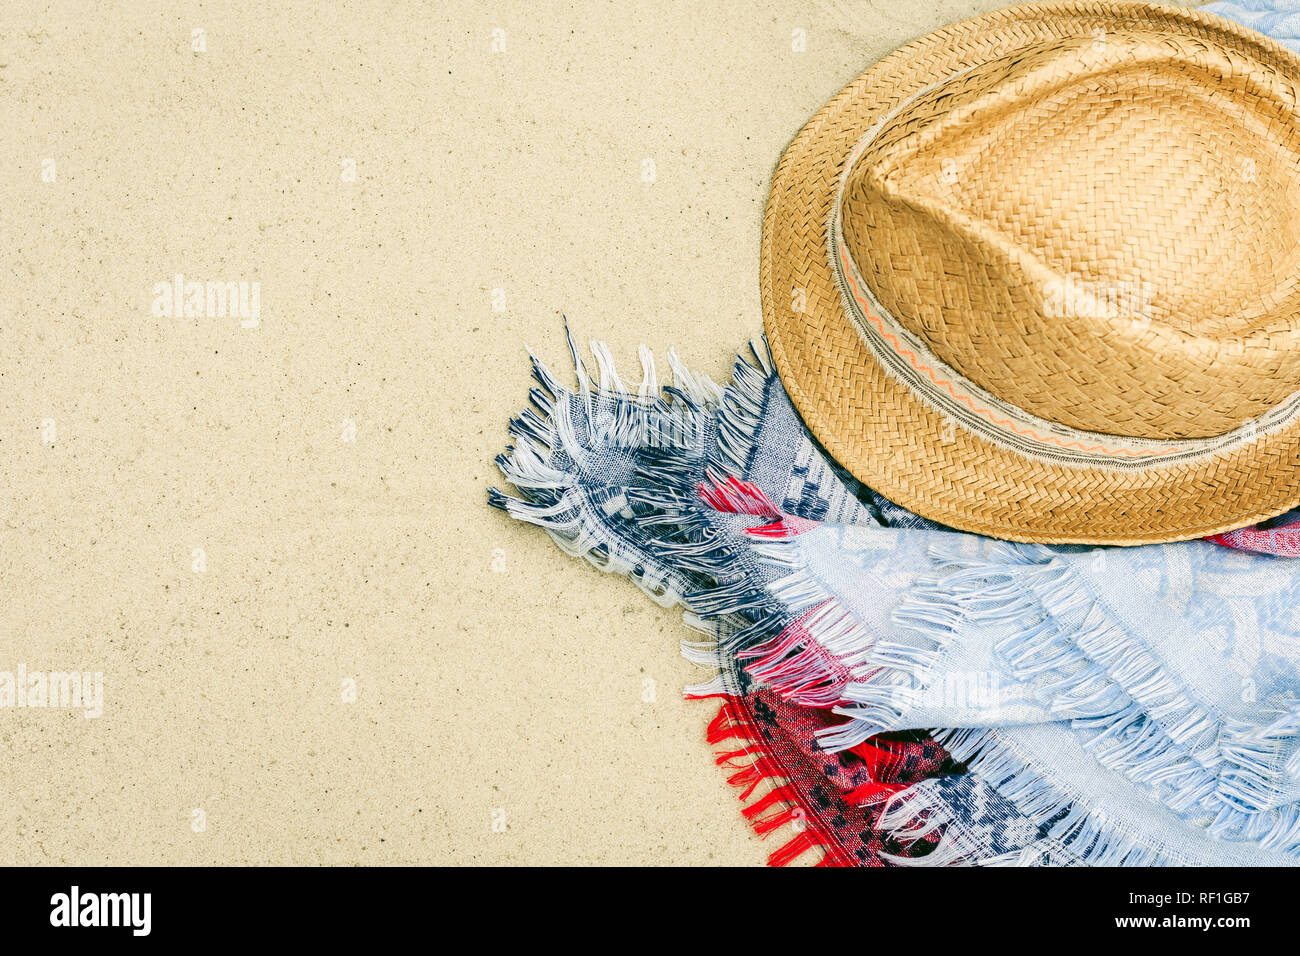 61105a9e Vintage summer wicker straw beach hat and blue pareo on the seashore of  Catania, Sicily